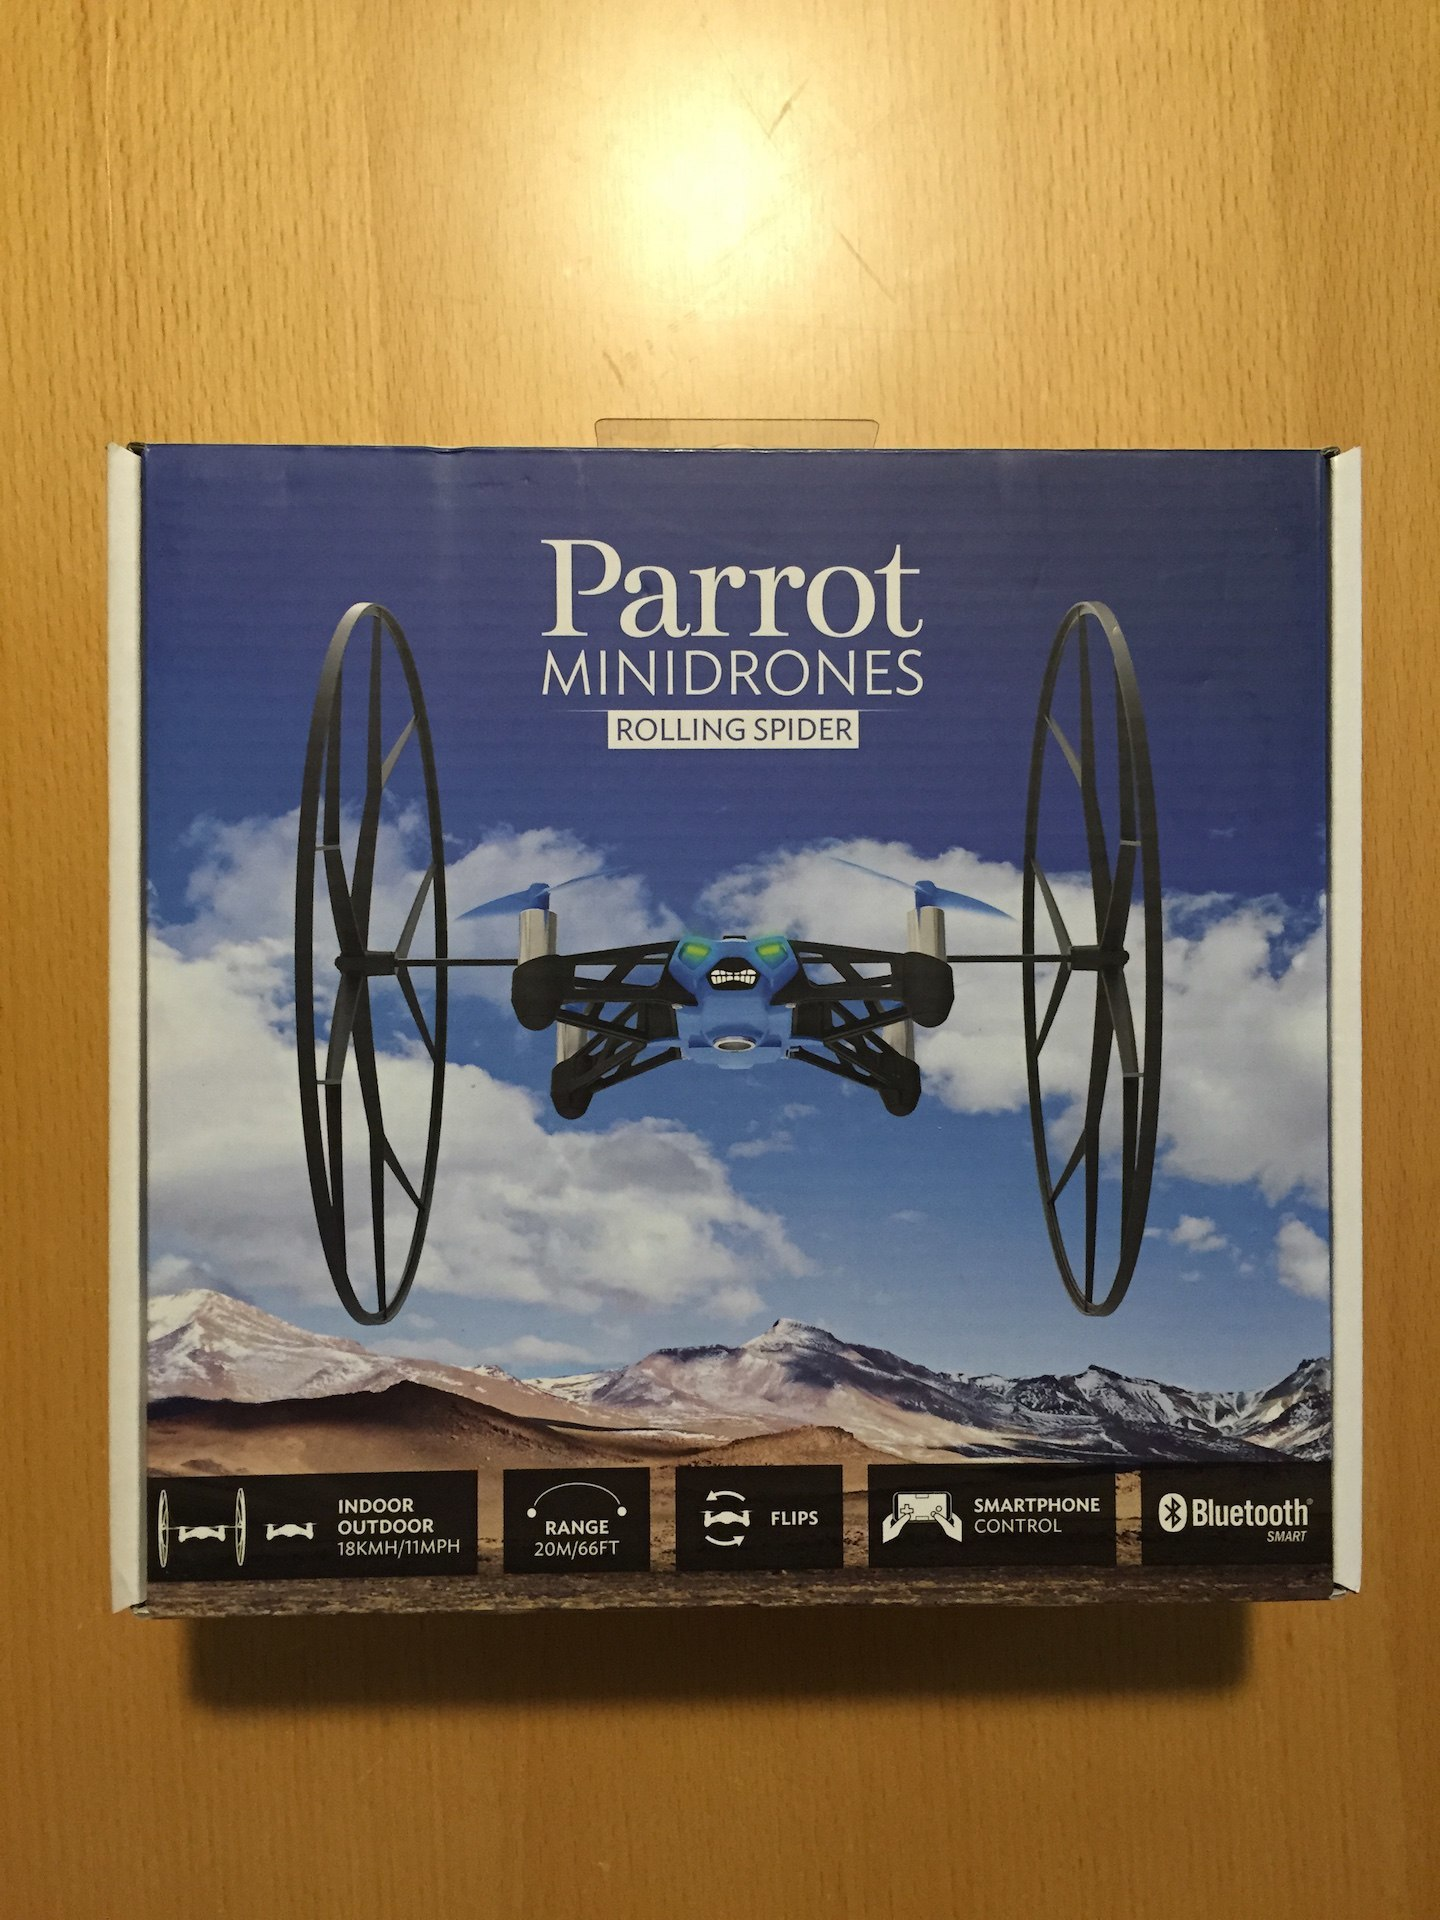 Parrot Rolling Spider